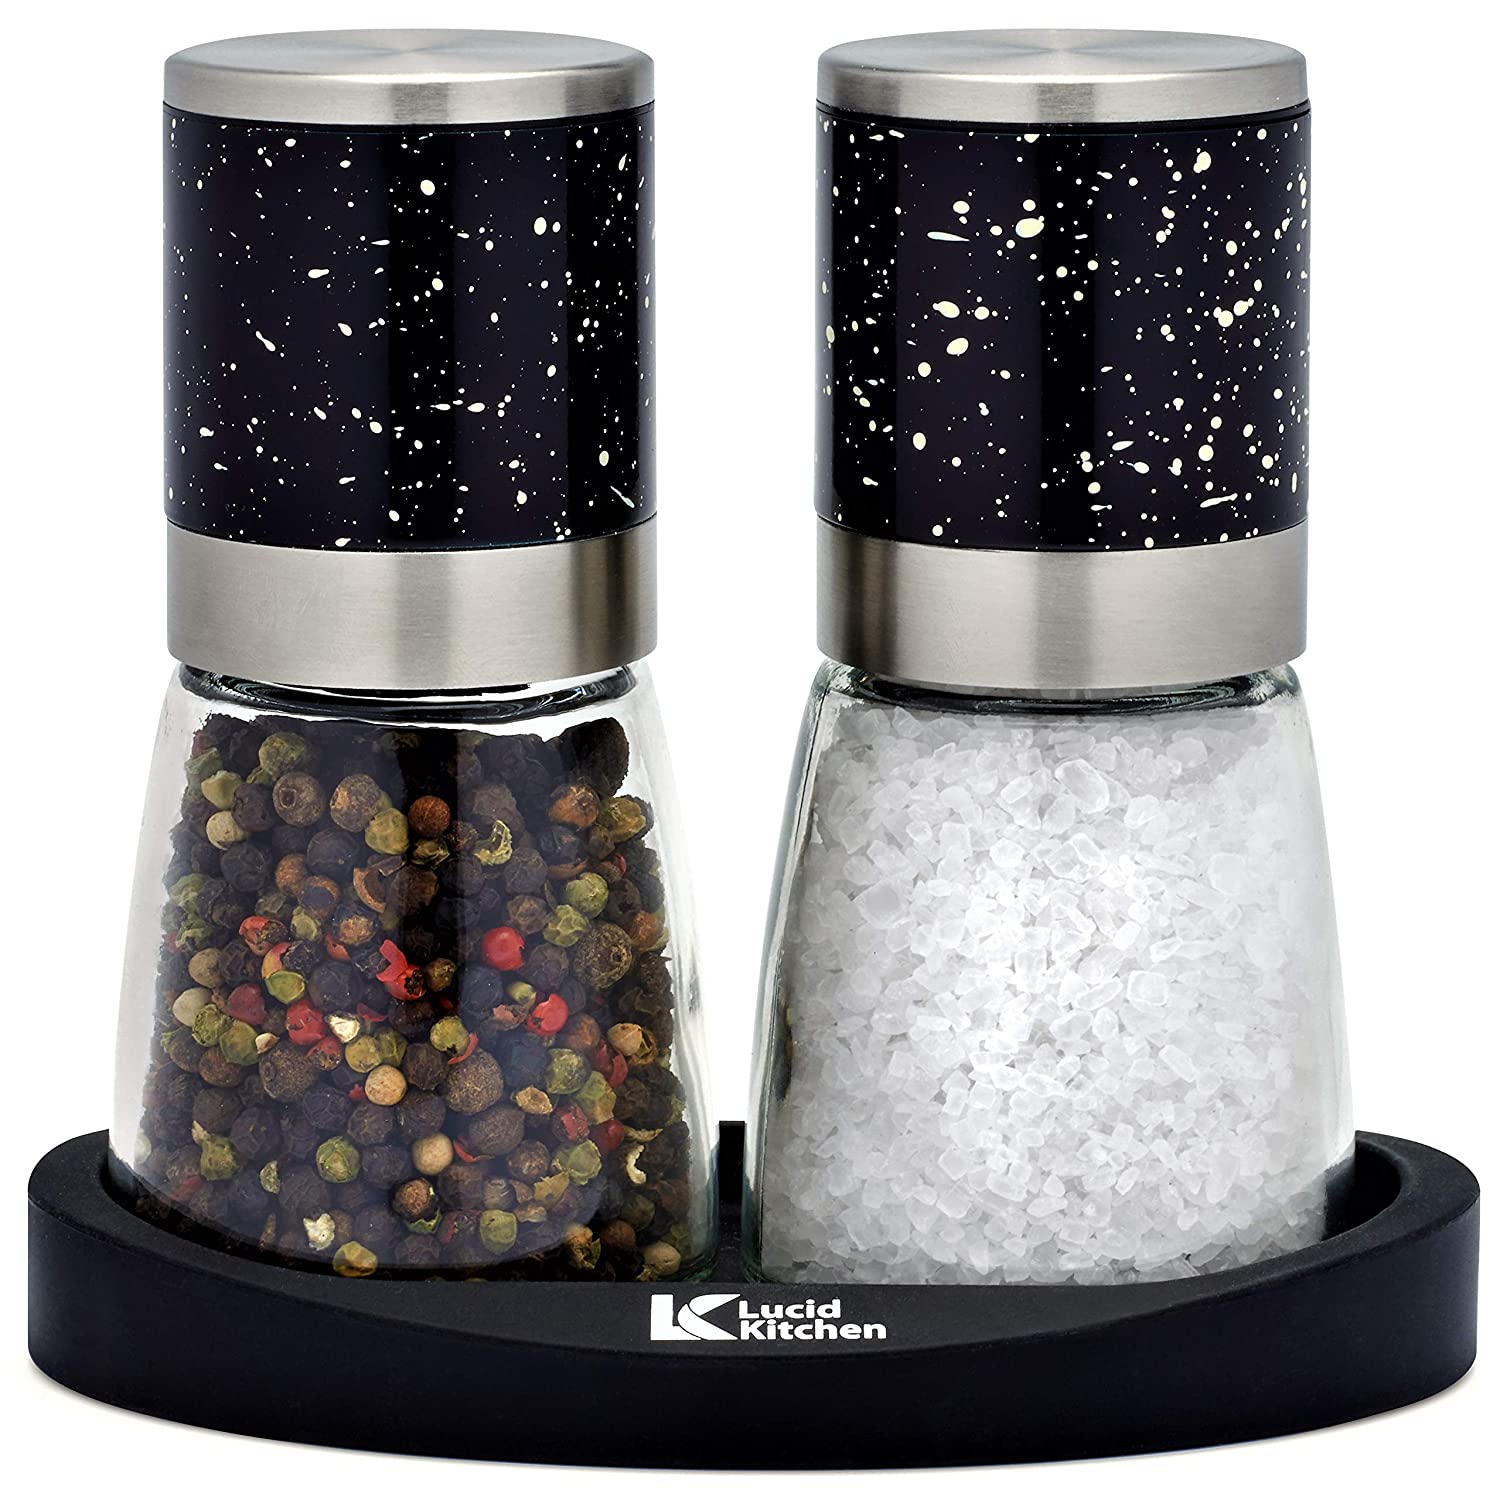 LucidKitchen Salt and Pepper Grinder Set with Stand - 2 Manual Stainless Steel Salt & Peppercorn Mills with Ceramic Core, Adjustable Coarseness & Large Glass Container - New Superior Design & Shape